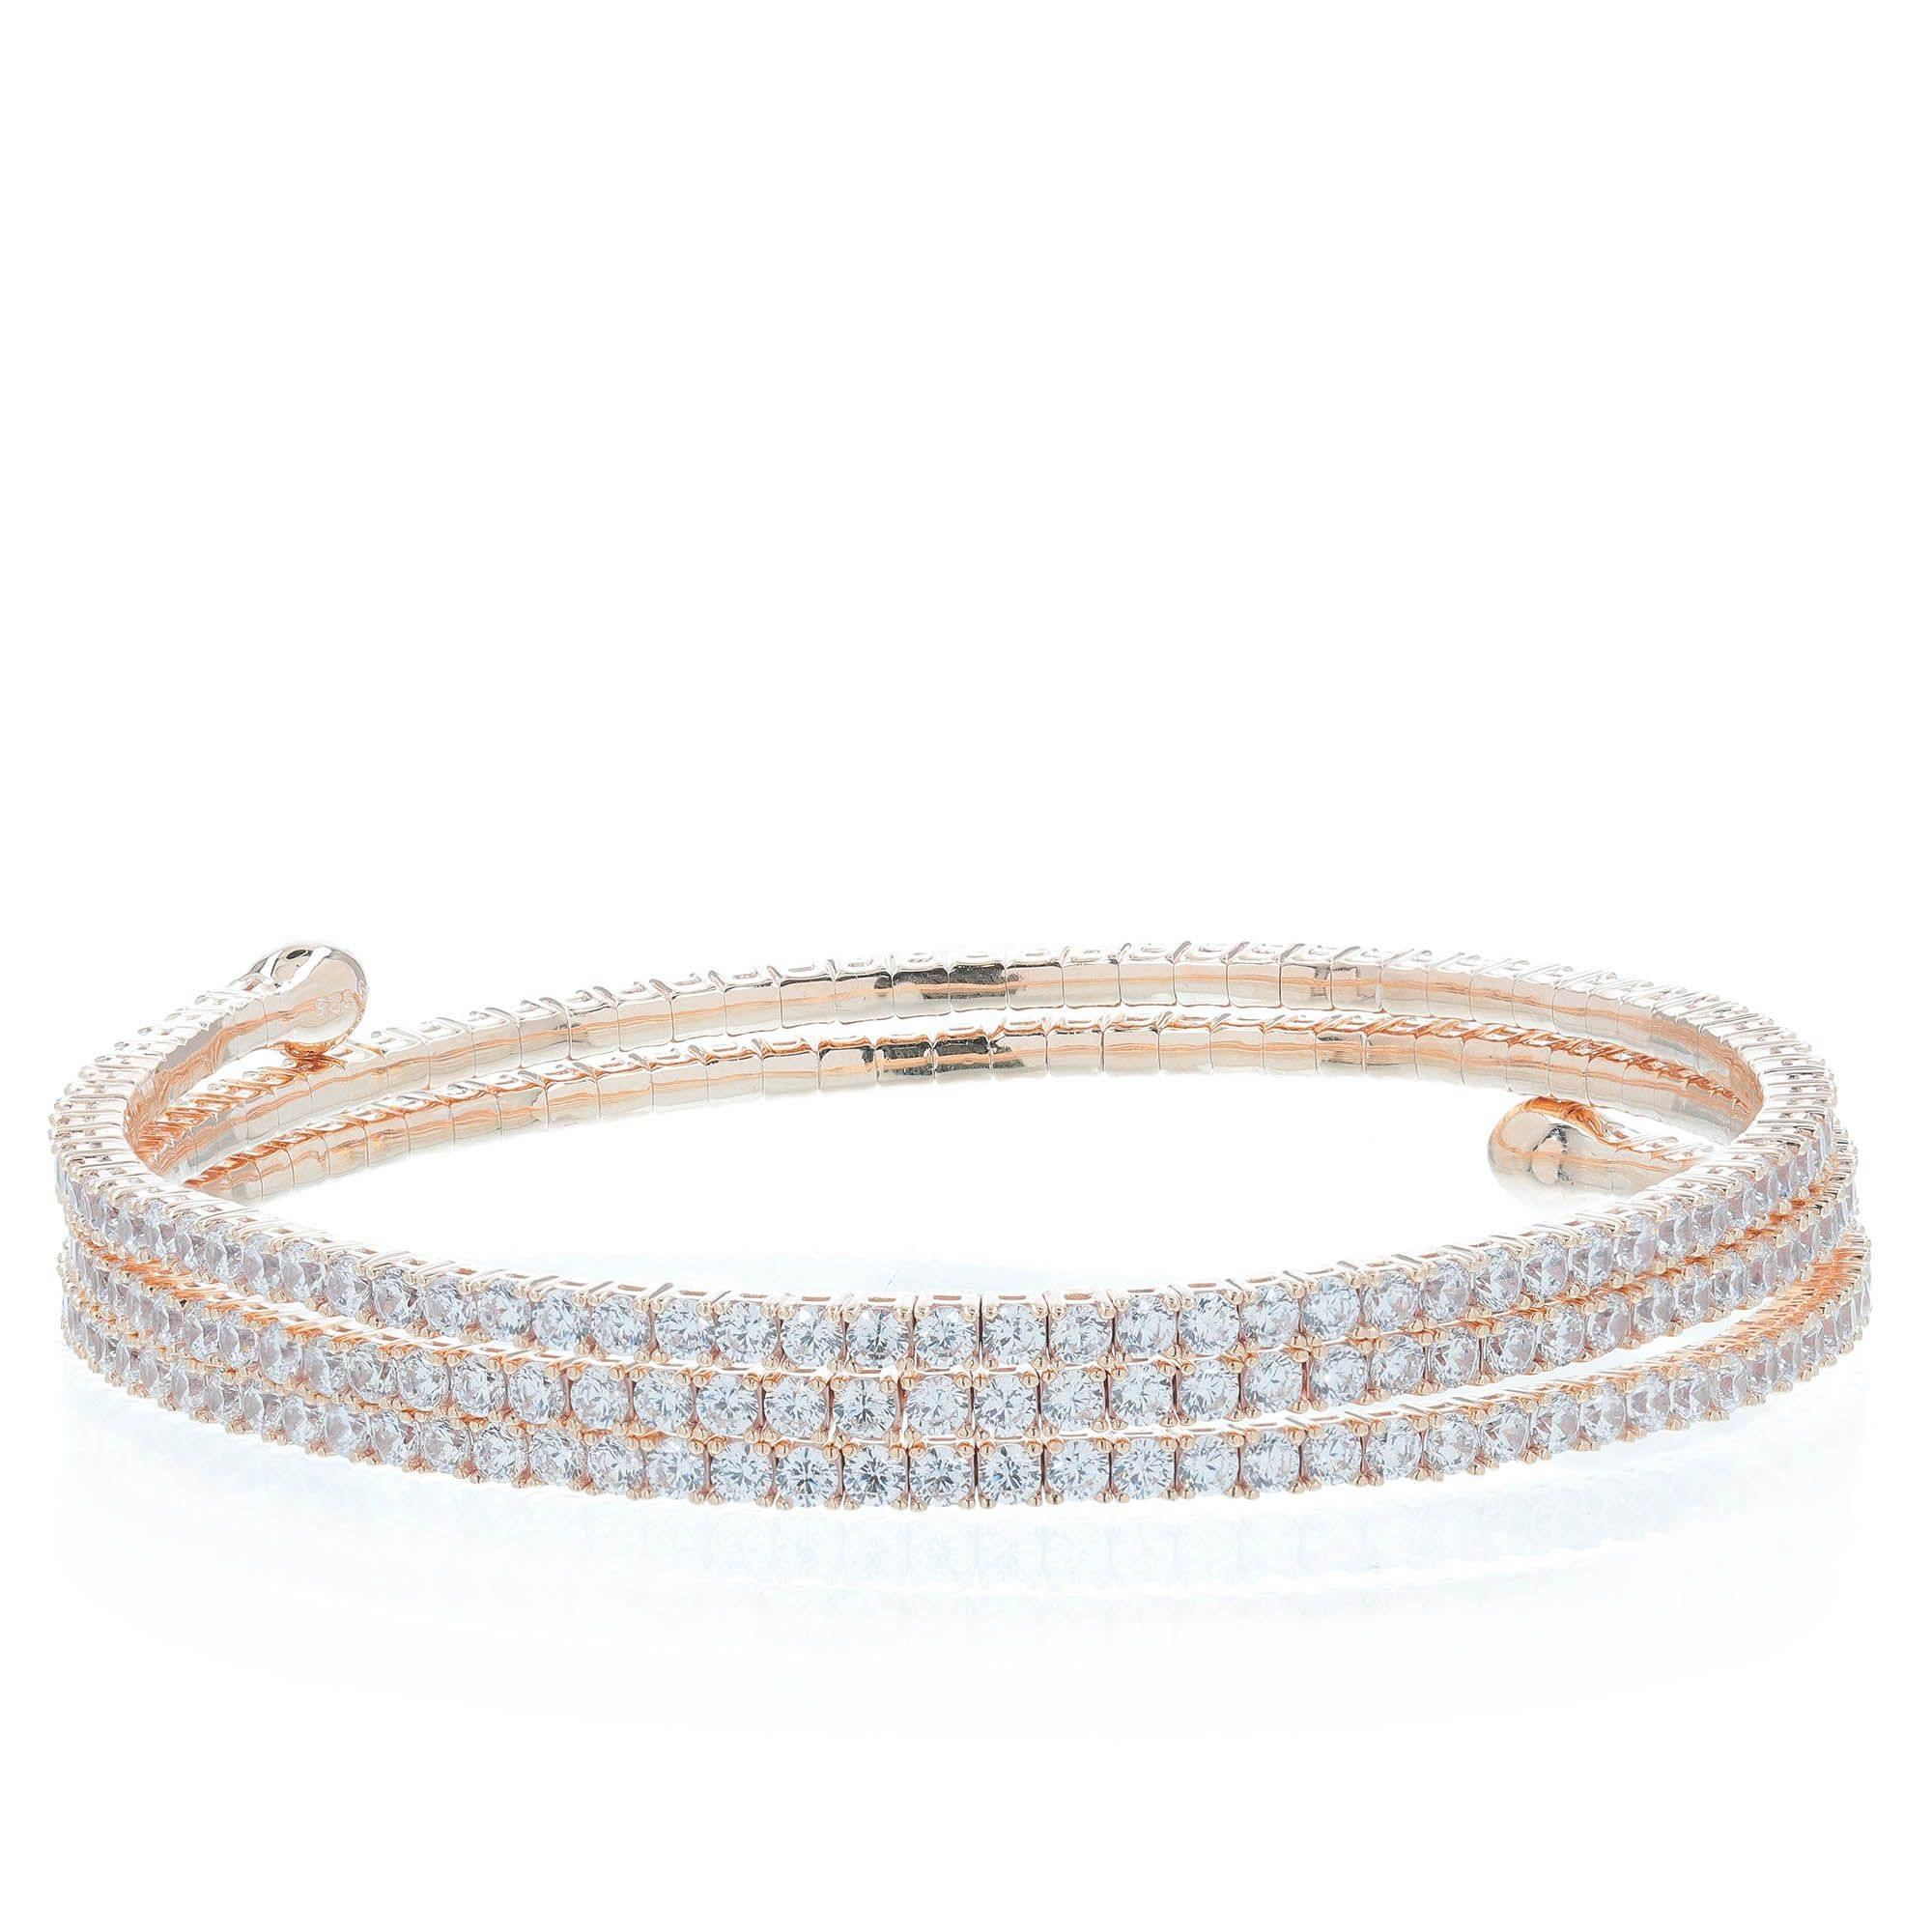 Diamonique Bracciale semirigido pari a 7.08ct in argento